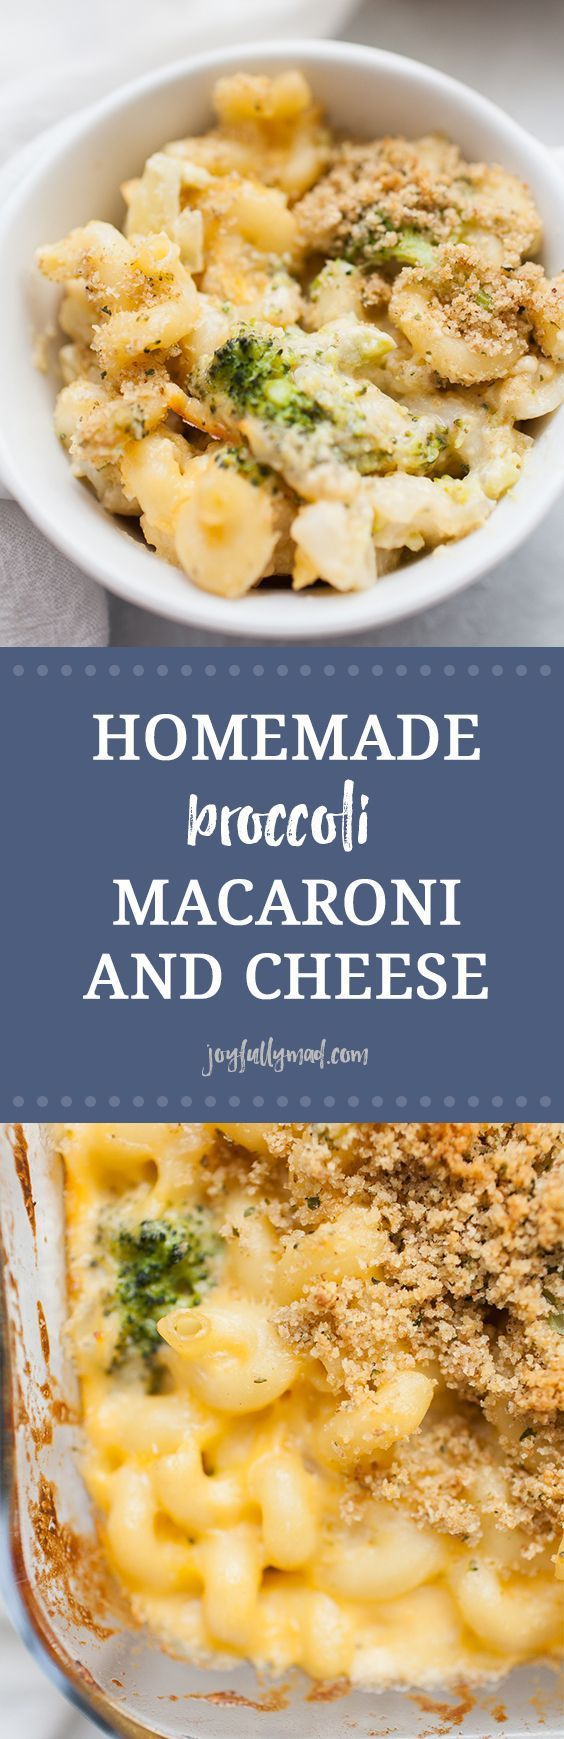 Homemade baked macaroni and cheese is a recipe every one should know how to make! If you enjoy eating mac and cheese, and who doesn't, this is a recipe you've got to try! It's perfect for weeknight dinners, bringing to a friend, or serving to the whole family! This homemade broccoli macaroni and cheese is made with corkscrew pasta, homemade cheese sauce, broccoli and finished with a bread crumb topping.  via @joyfullymad